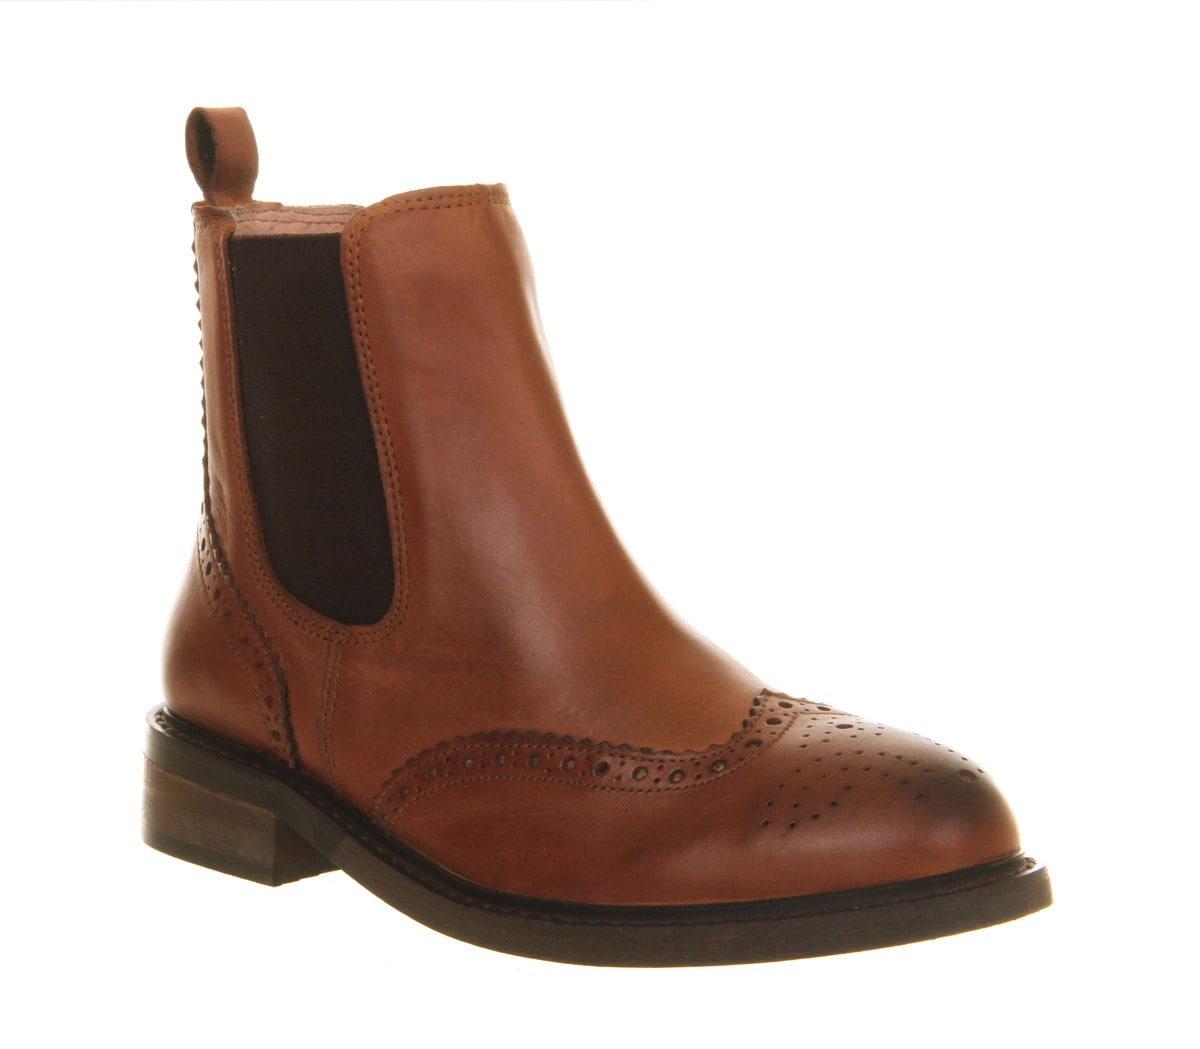 Womens-Office-Baron-Brogue-Chelsea-Brown-Leather-Boots-